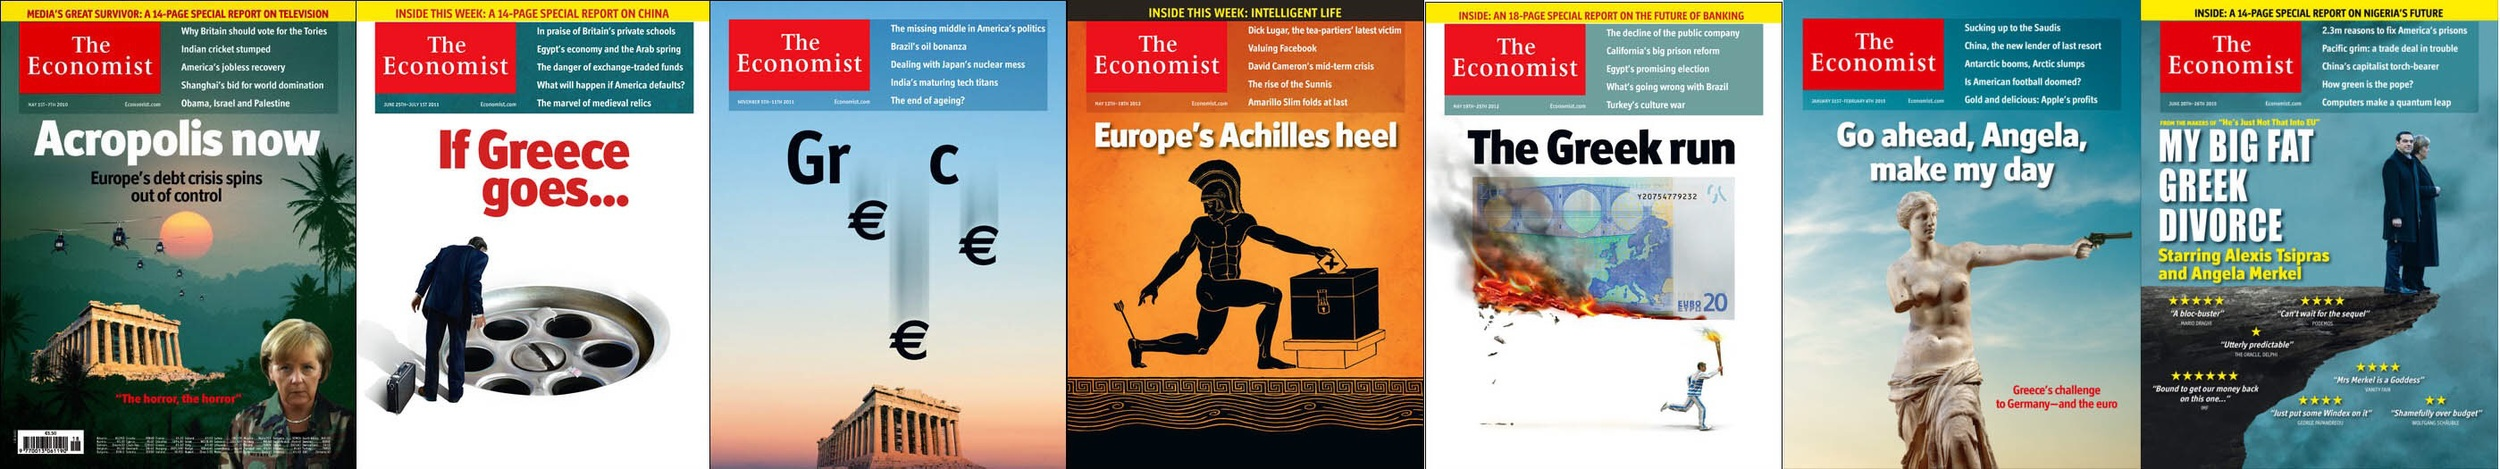 A panorama of the 7 cover pages from The Econimist that feature Greece dating back to April 2010. How times have changed!  Images from The Economist